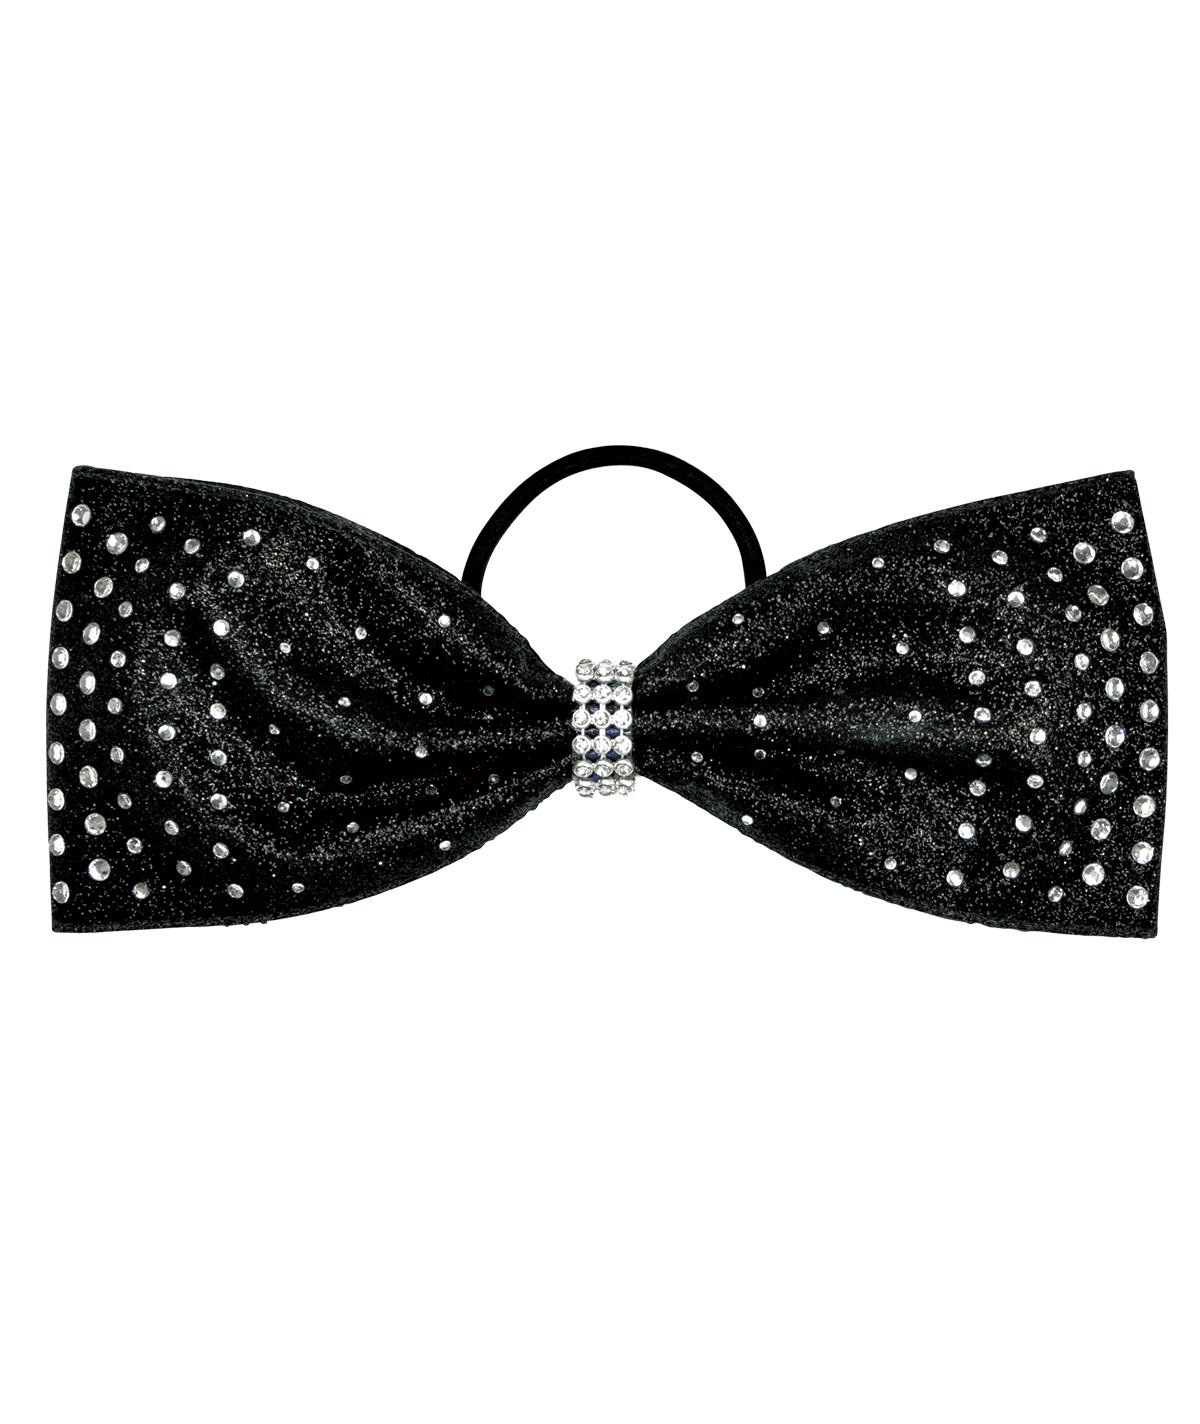 Chassé Cheer Bling Tailless Performance Hair Bow